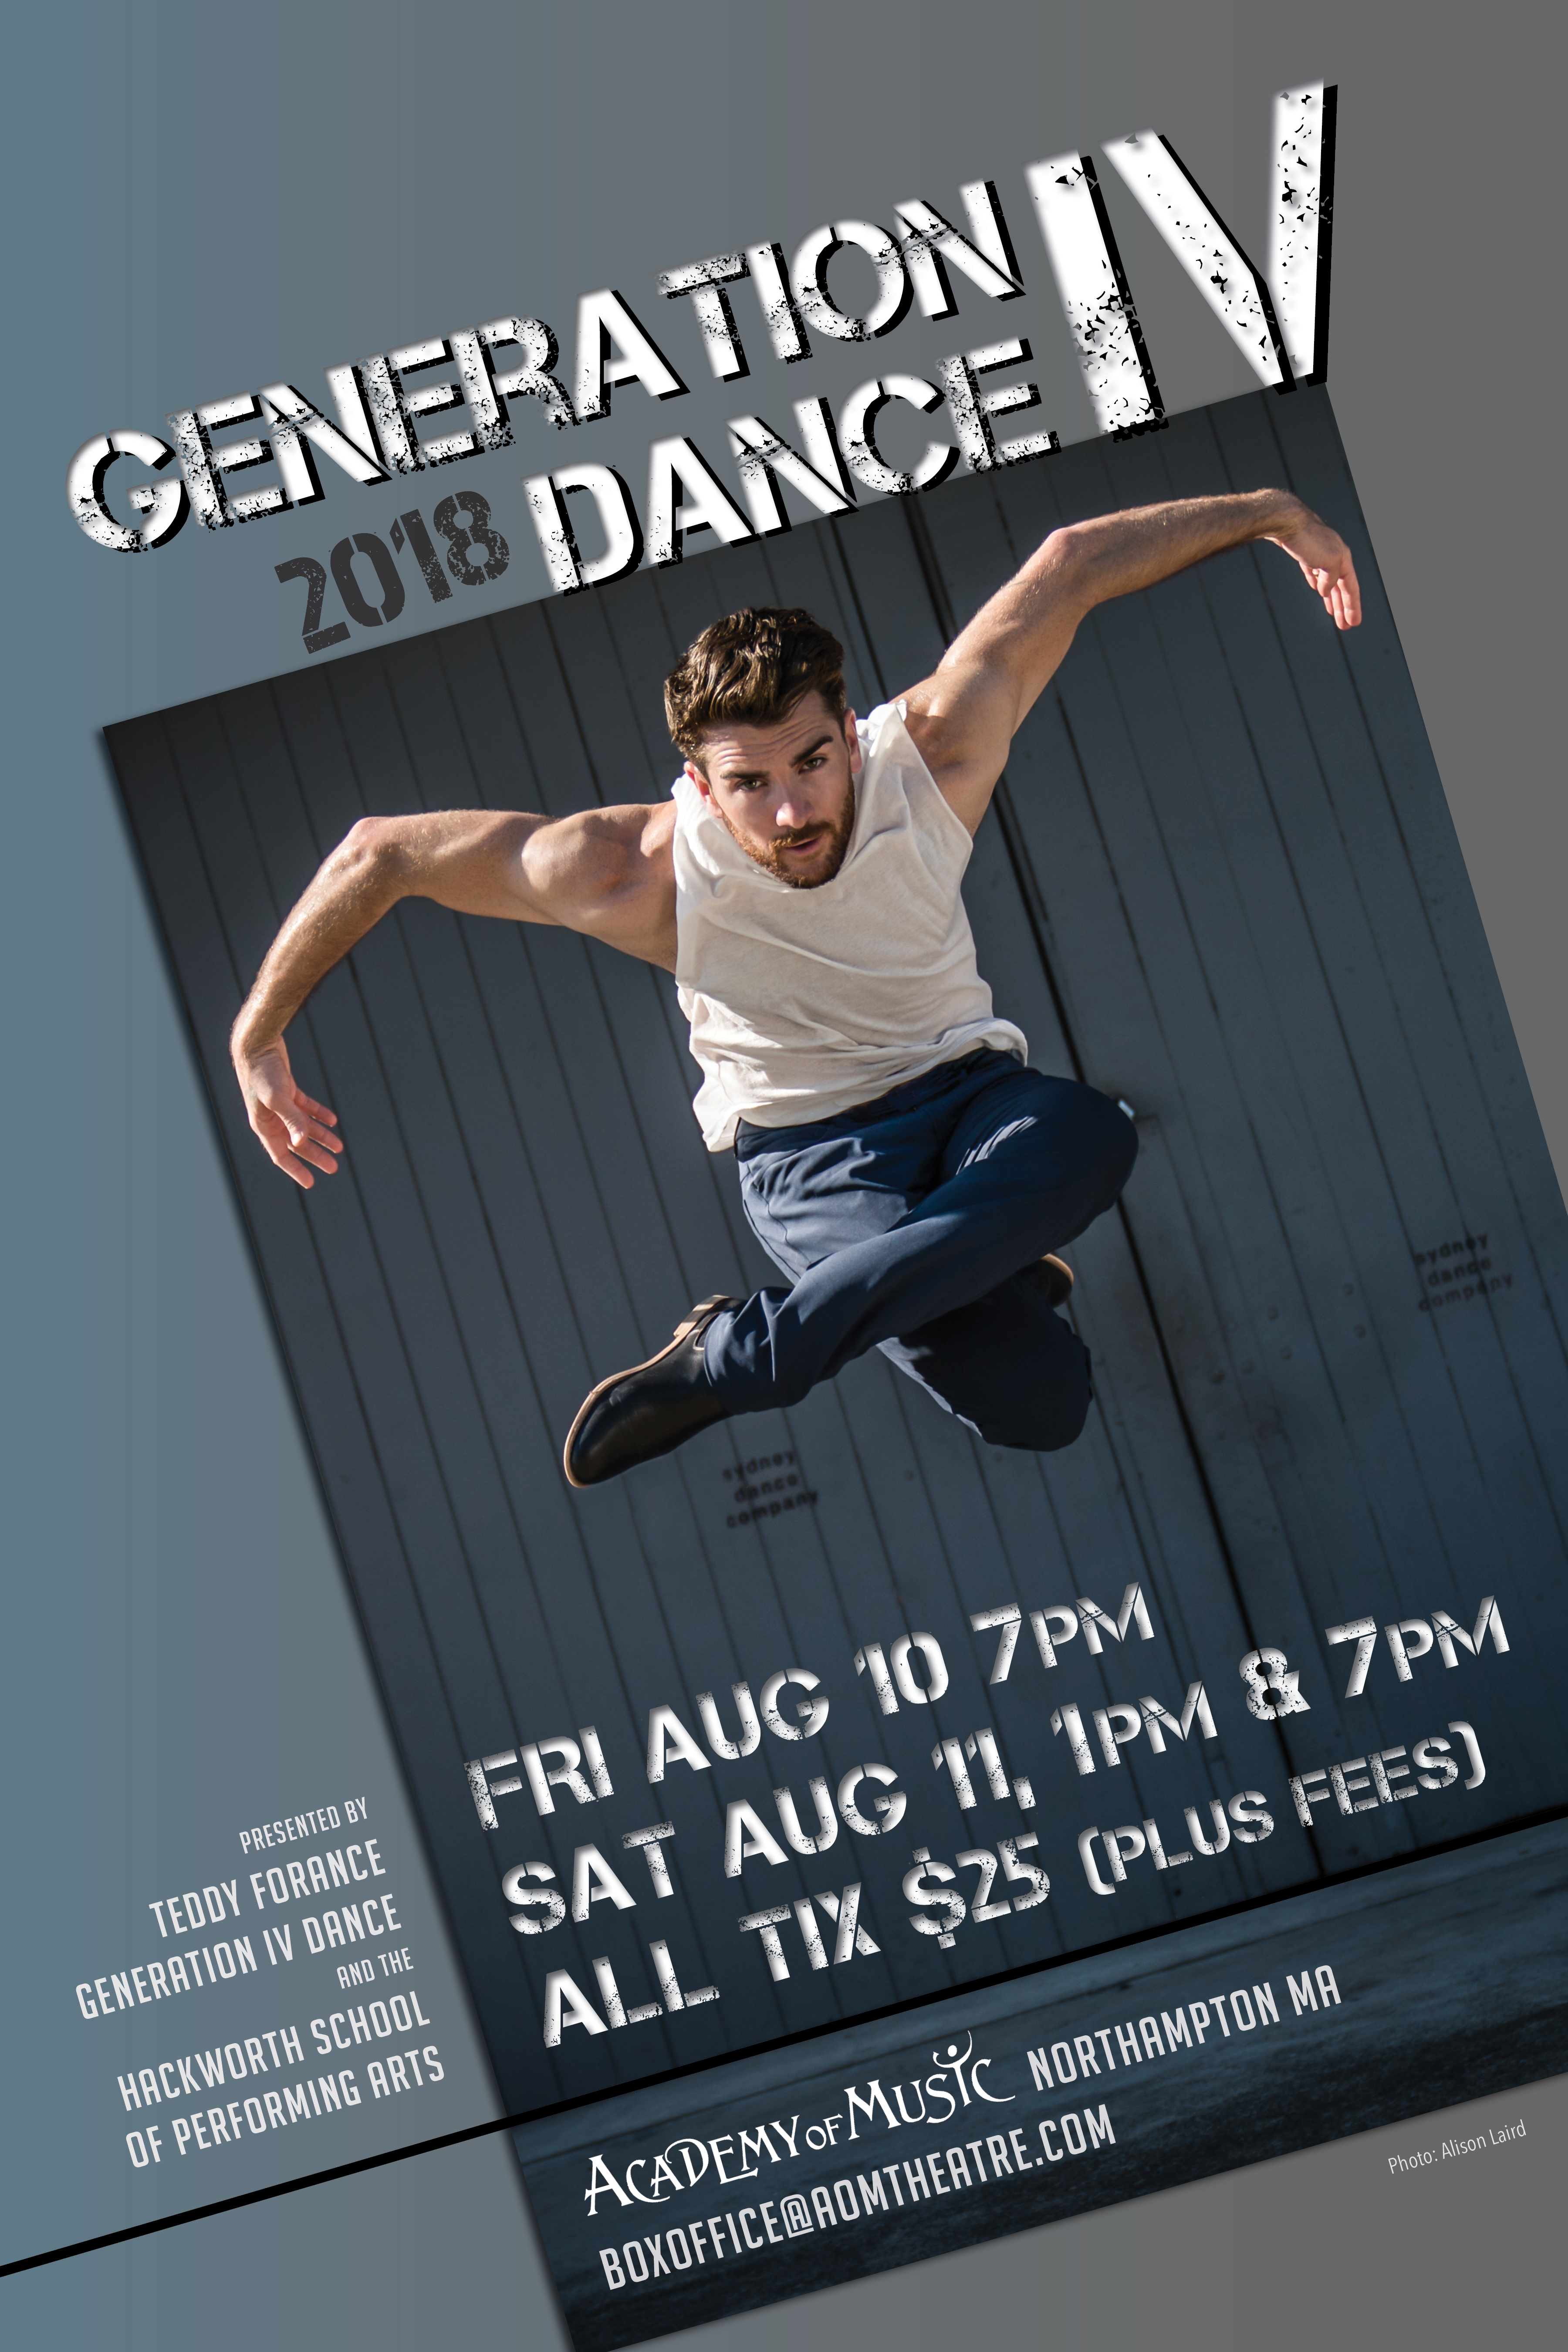 Hometown Celebrity And Emmy Award Winner Teddy Forance Along With The Entire Hackworth Family Presents Generation IV Dance A Week Long